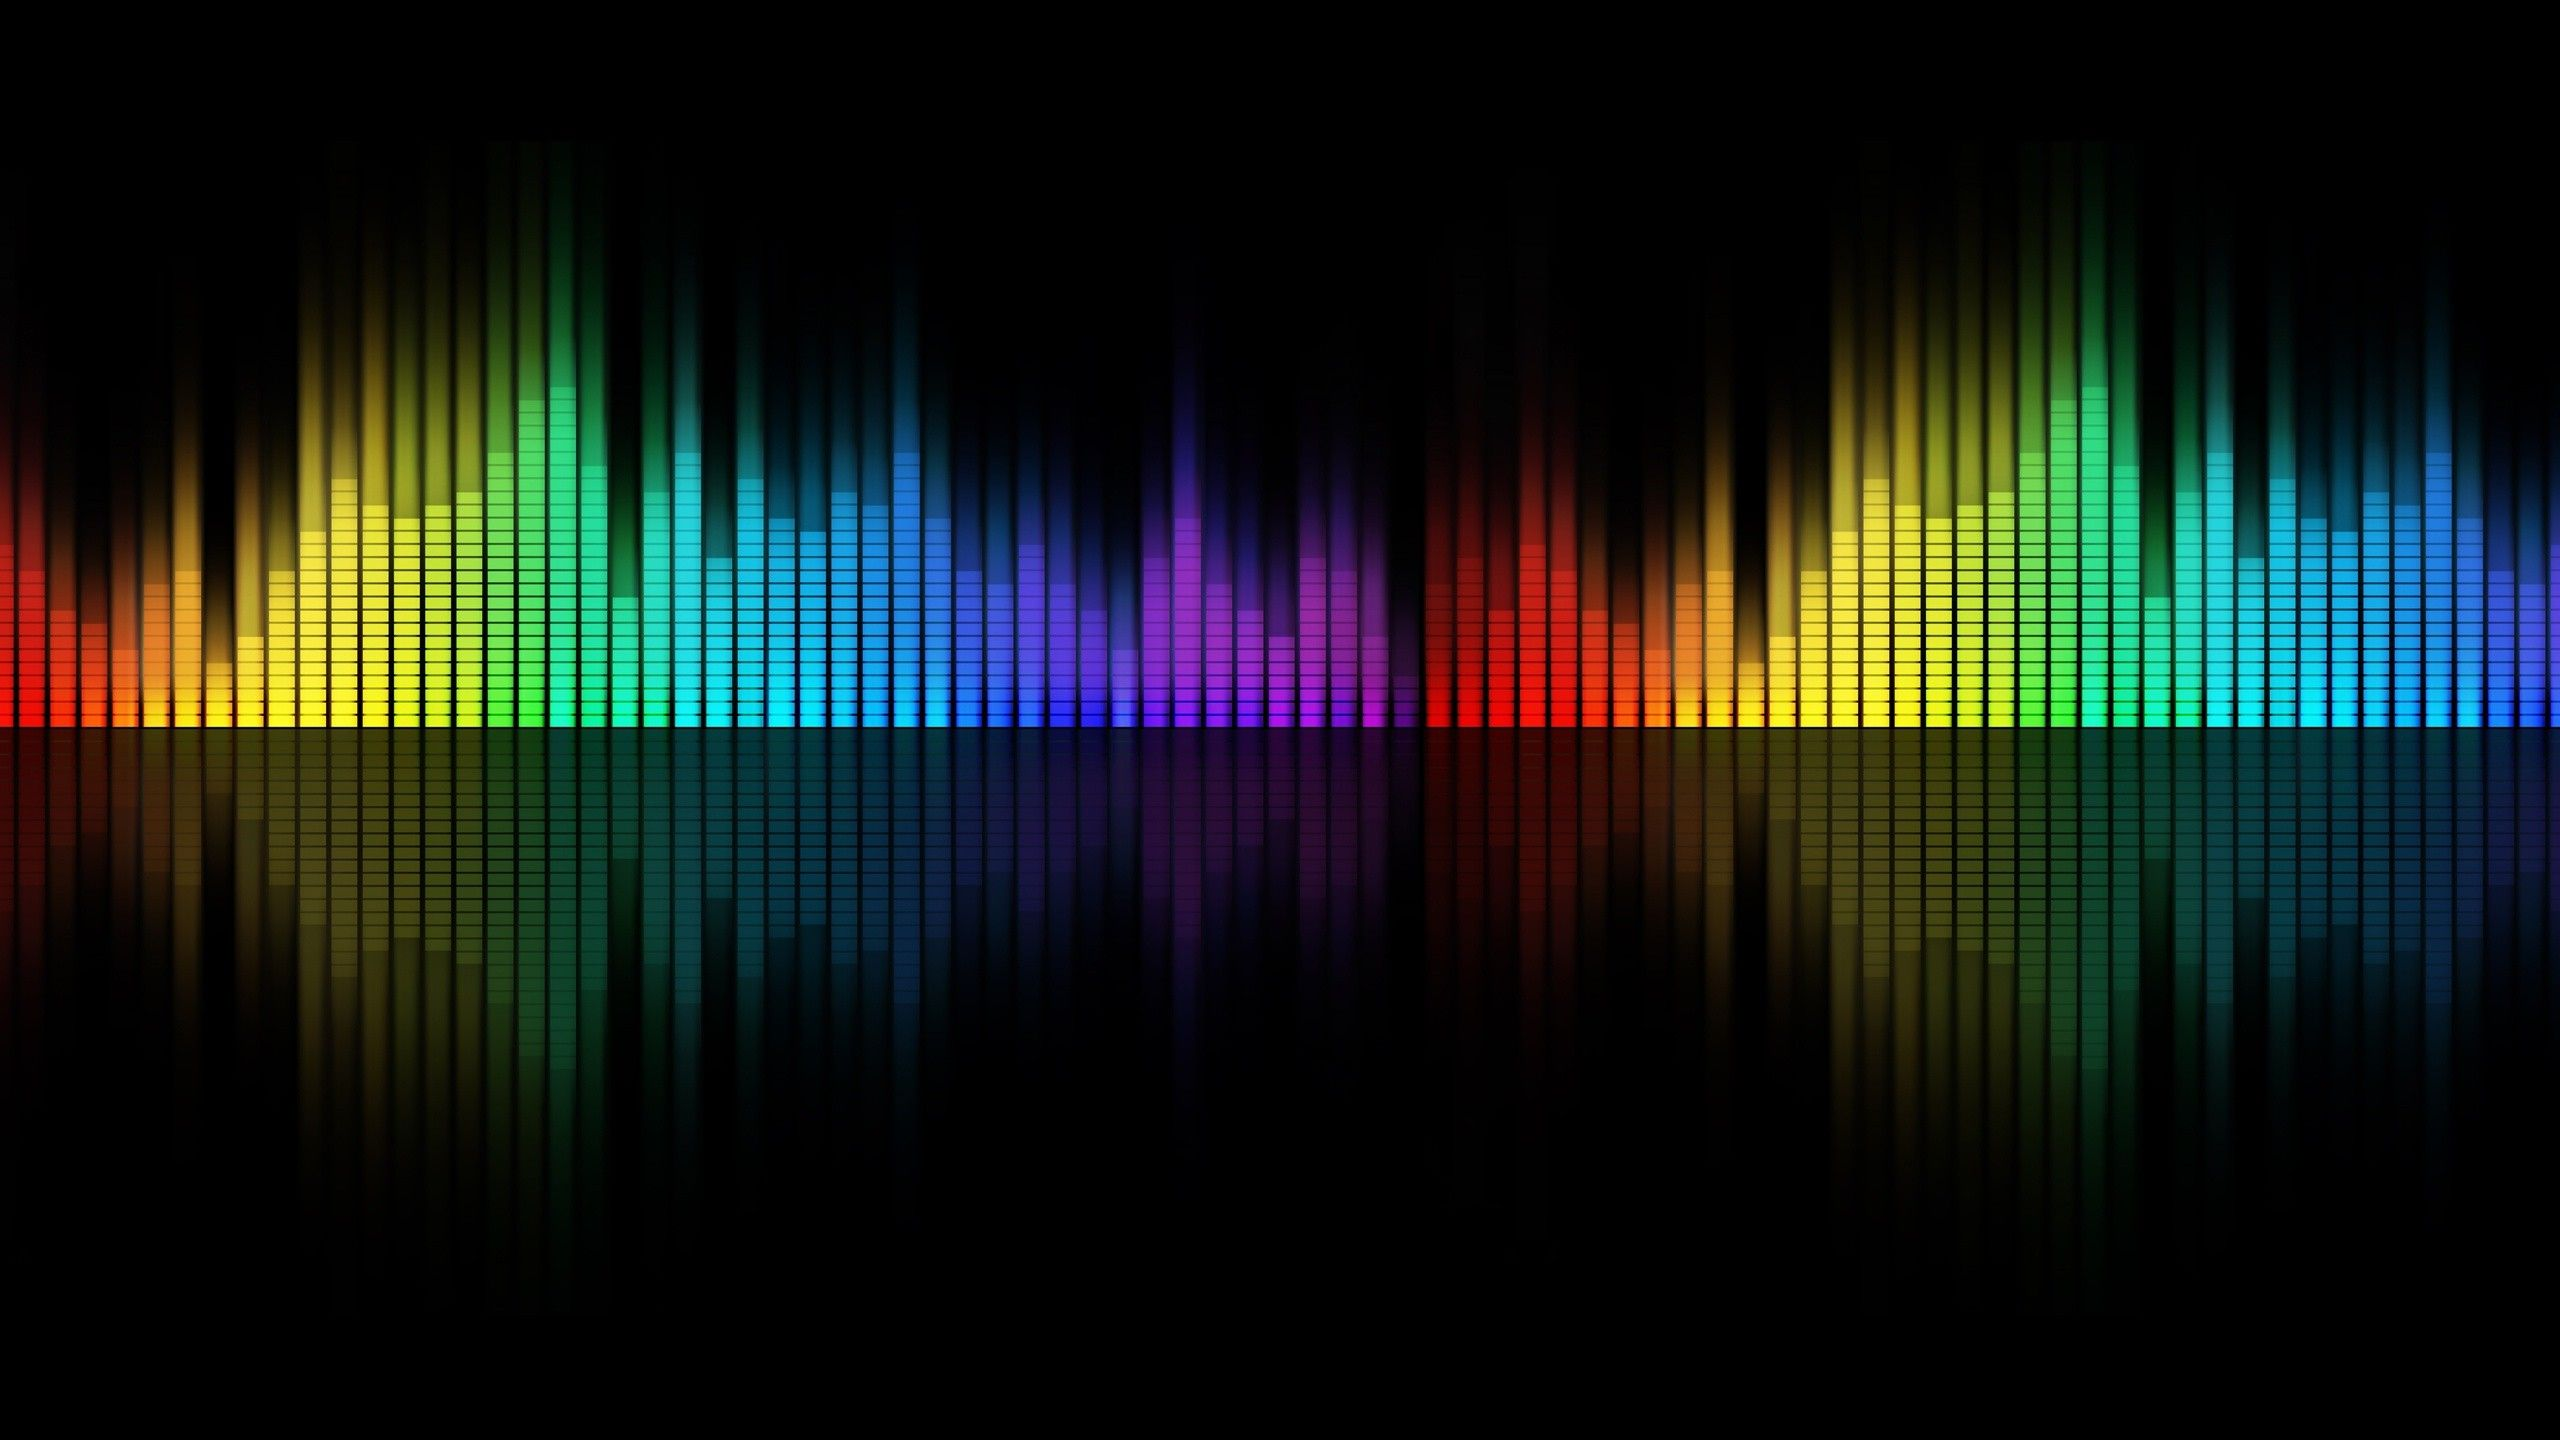 Spectrum wallpapers top free spectrum backgrounds - Music hd wallpapers free download ...